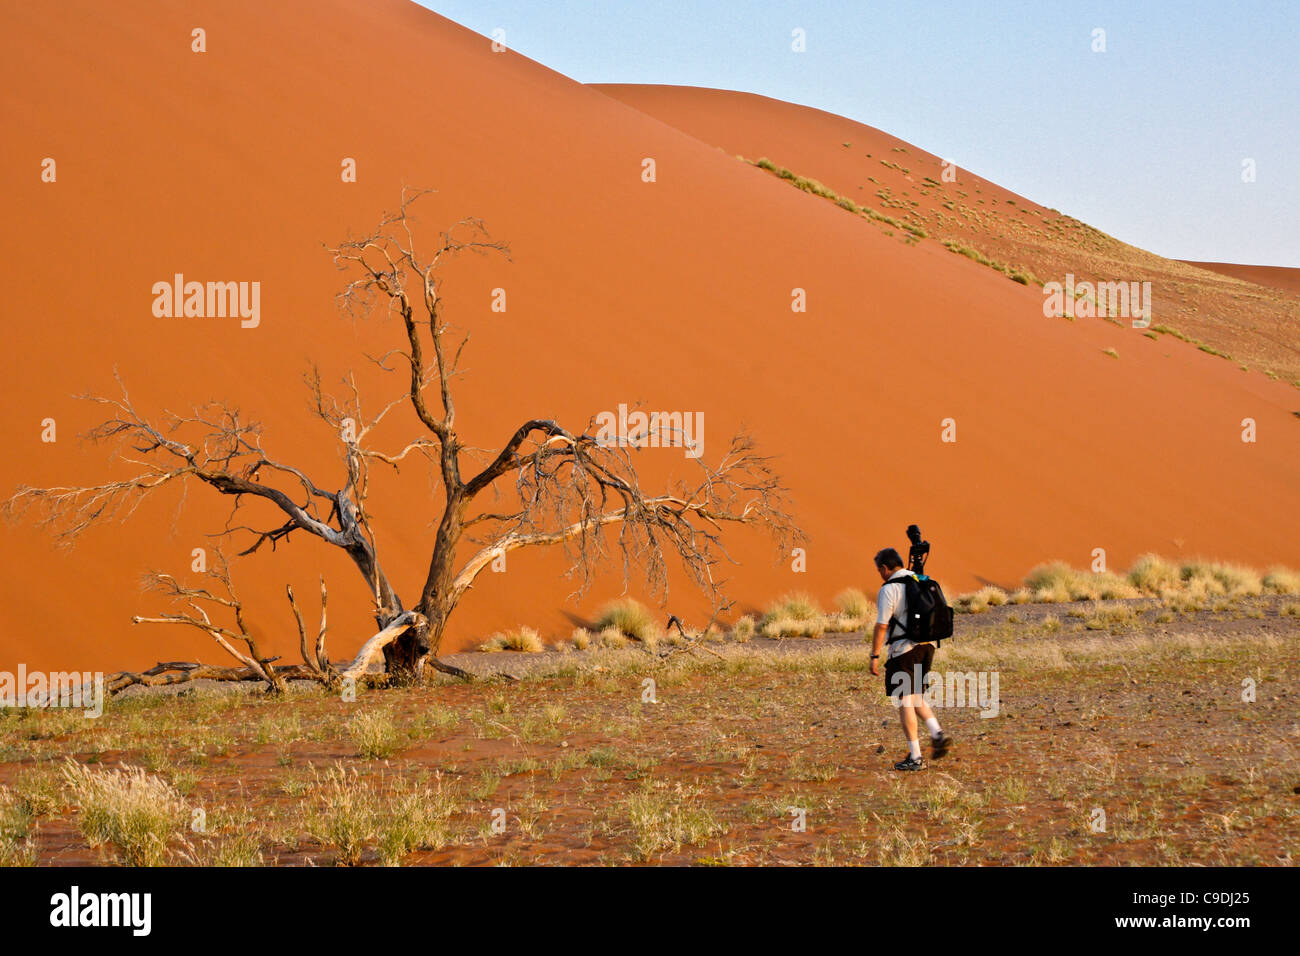 Photographer at Dune 45, Namib-Naukluft Park, Namibia Stock Photo